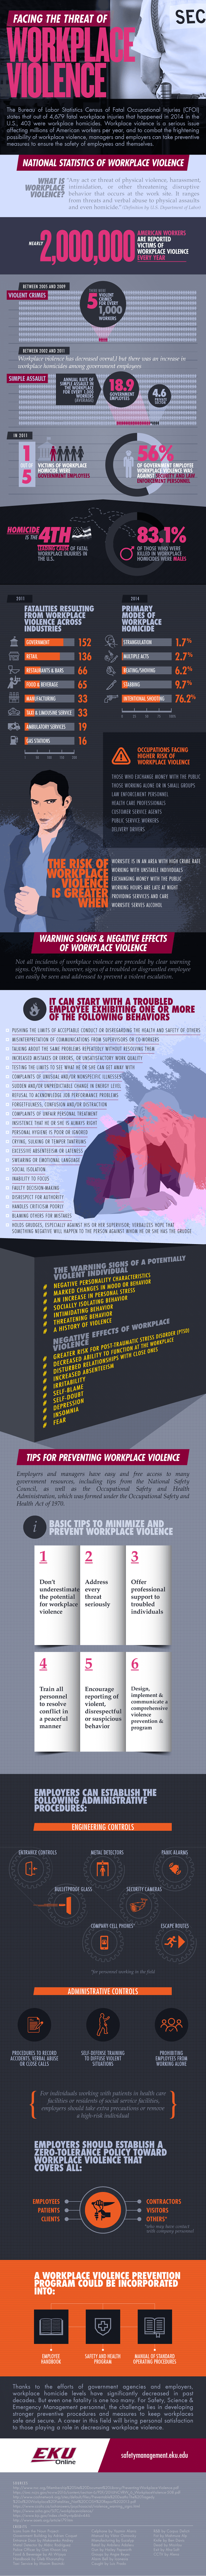 Infograph on Facing the Threat of Workplace Violence